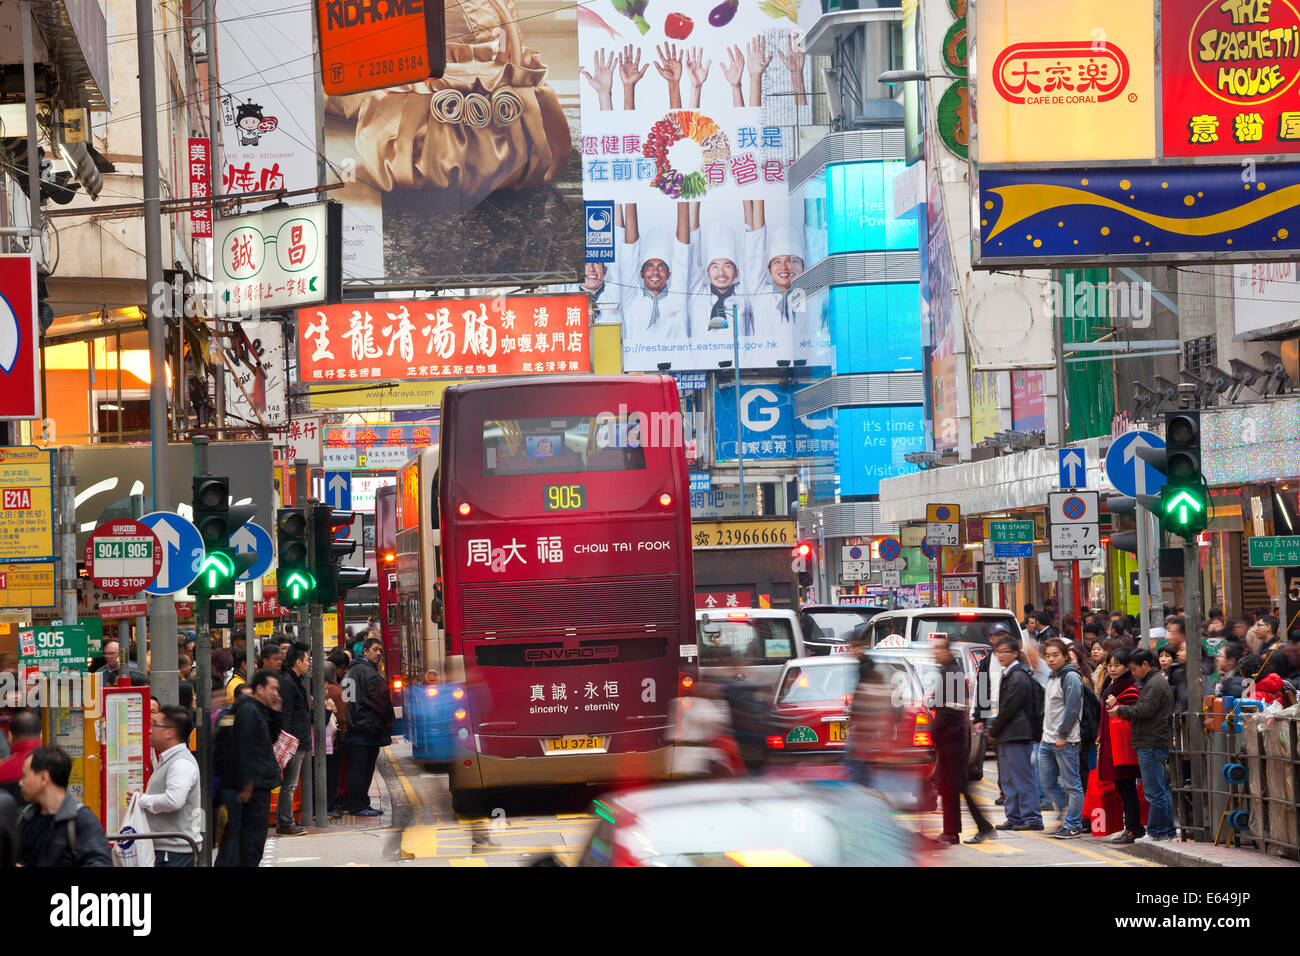 Rue animée zone commerçante et crossing nr Fa Yuen Street Market, Hong Kong, Chine Photo Stock